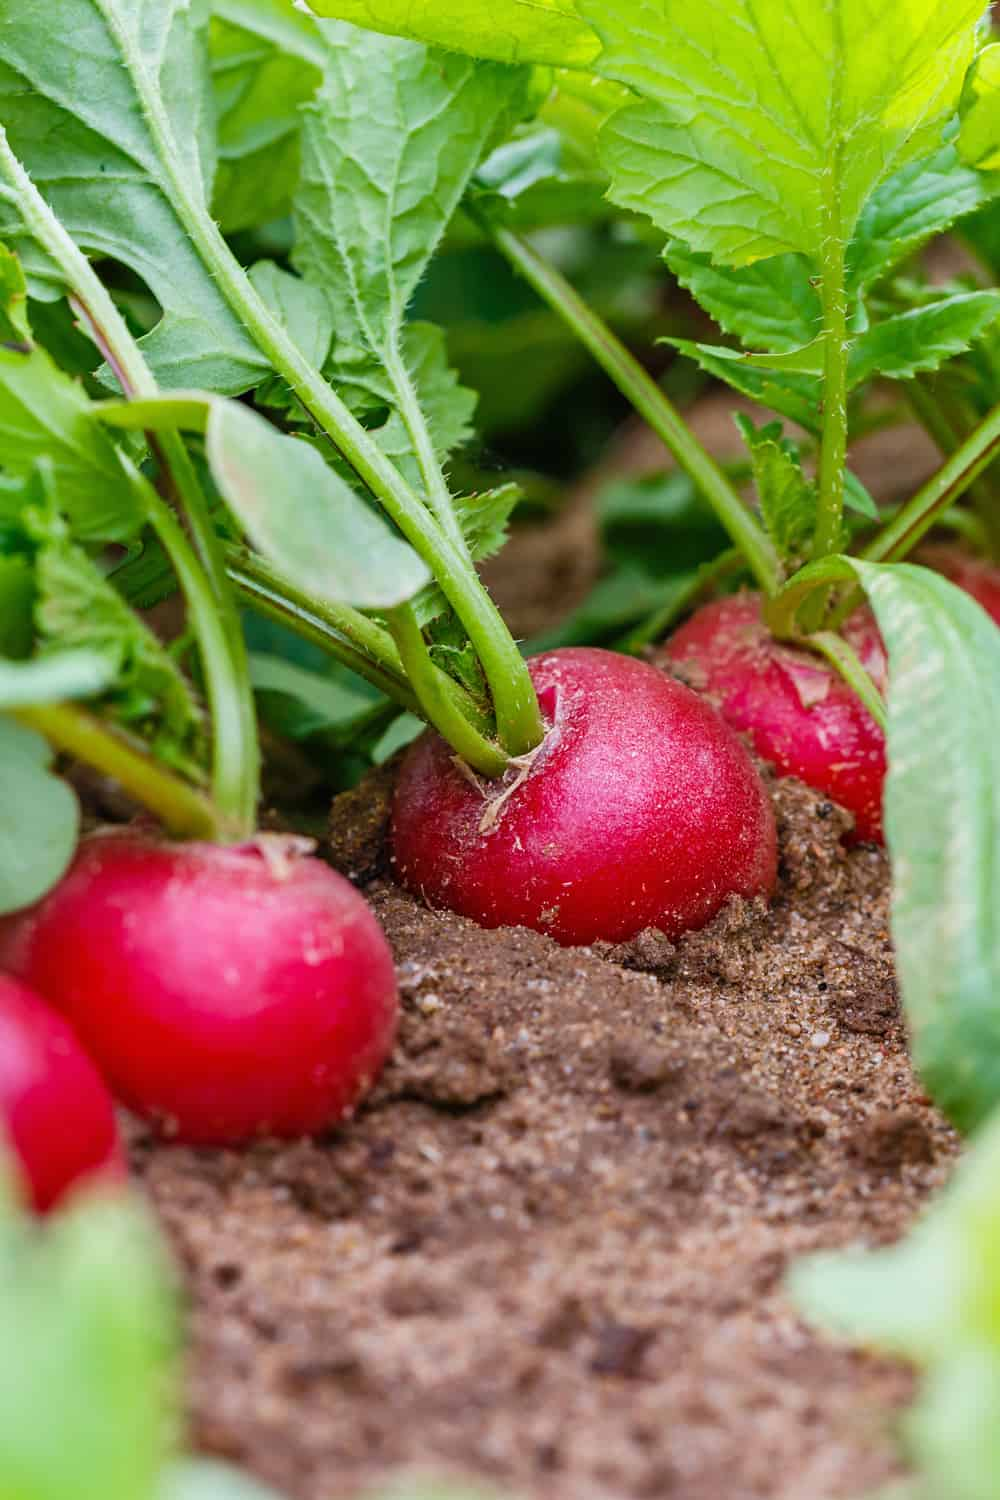 The risk of consuming an expired radish